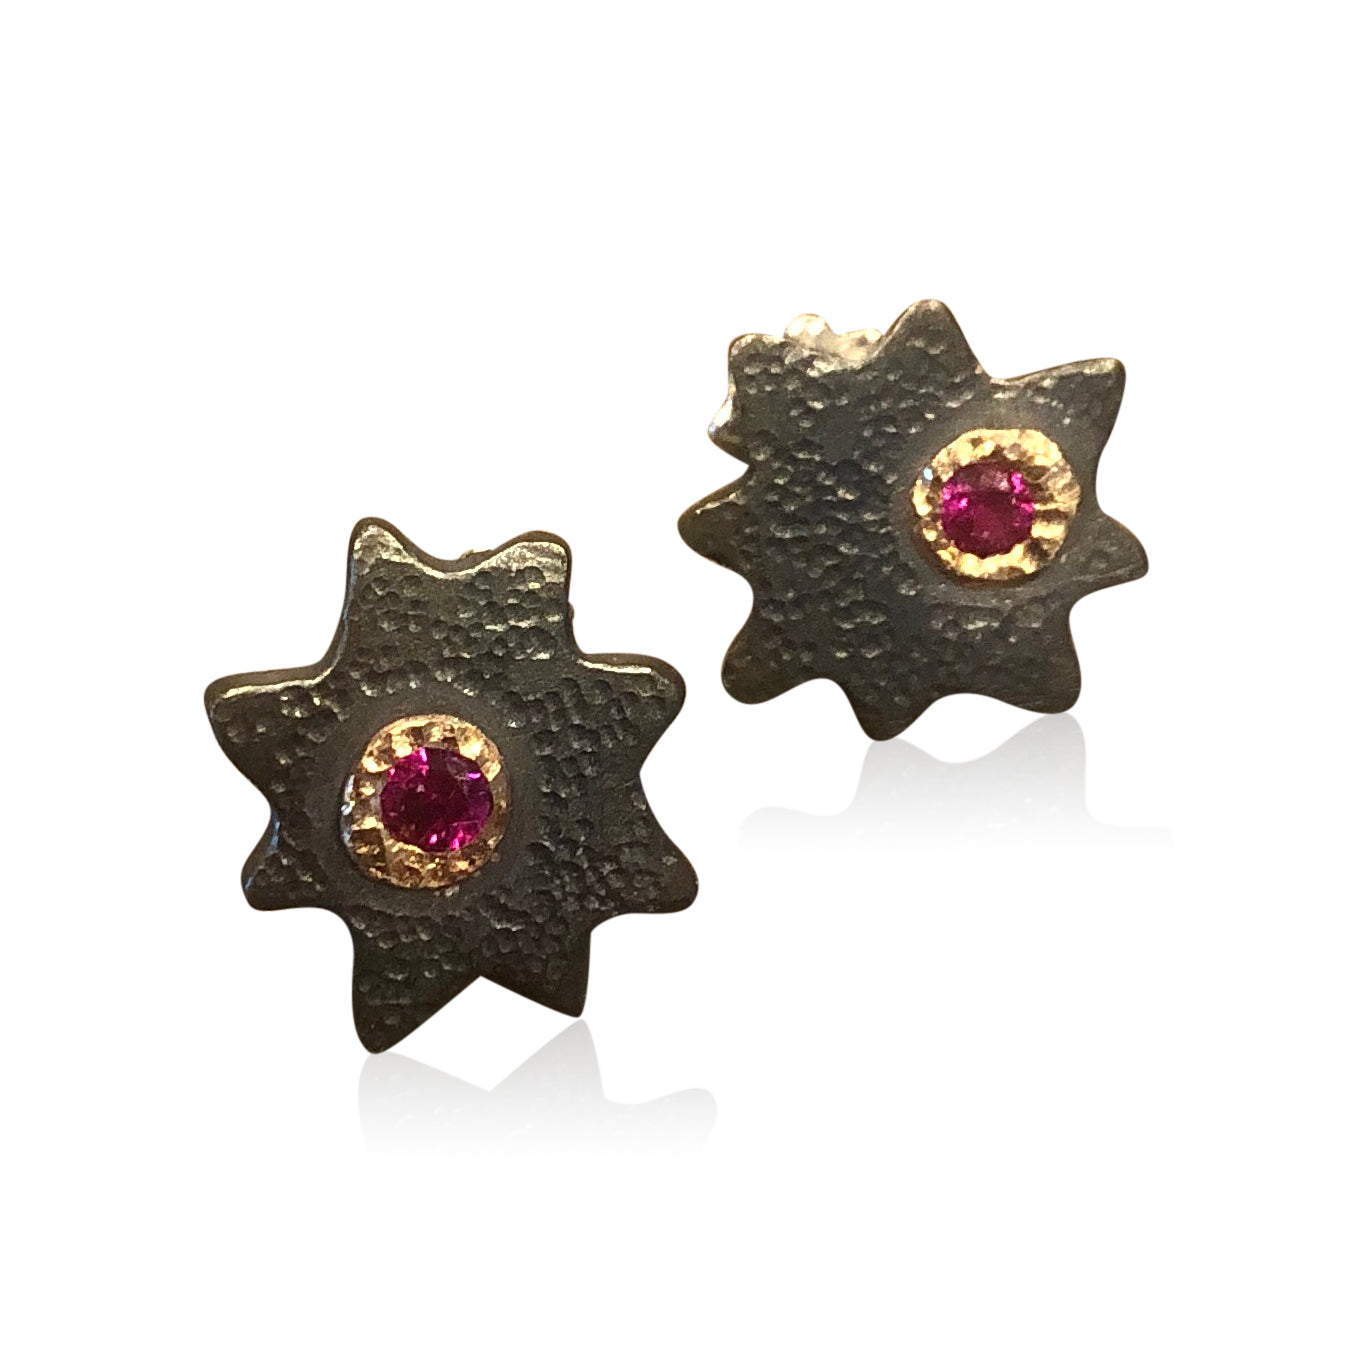 "E8 - ""Super Star Earrings"" Oxidized Sterling Silver Star Earrings w 14KT Bezeled Rubies"